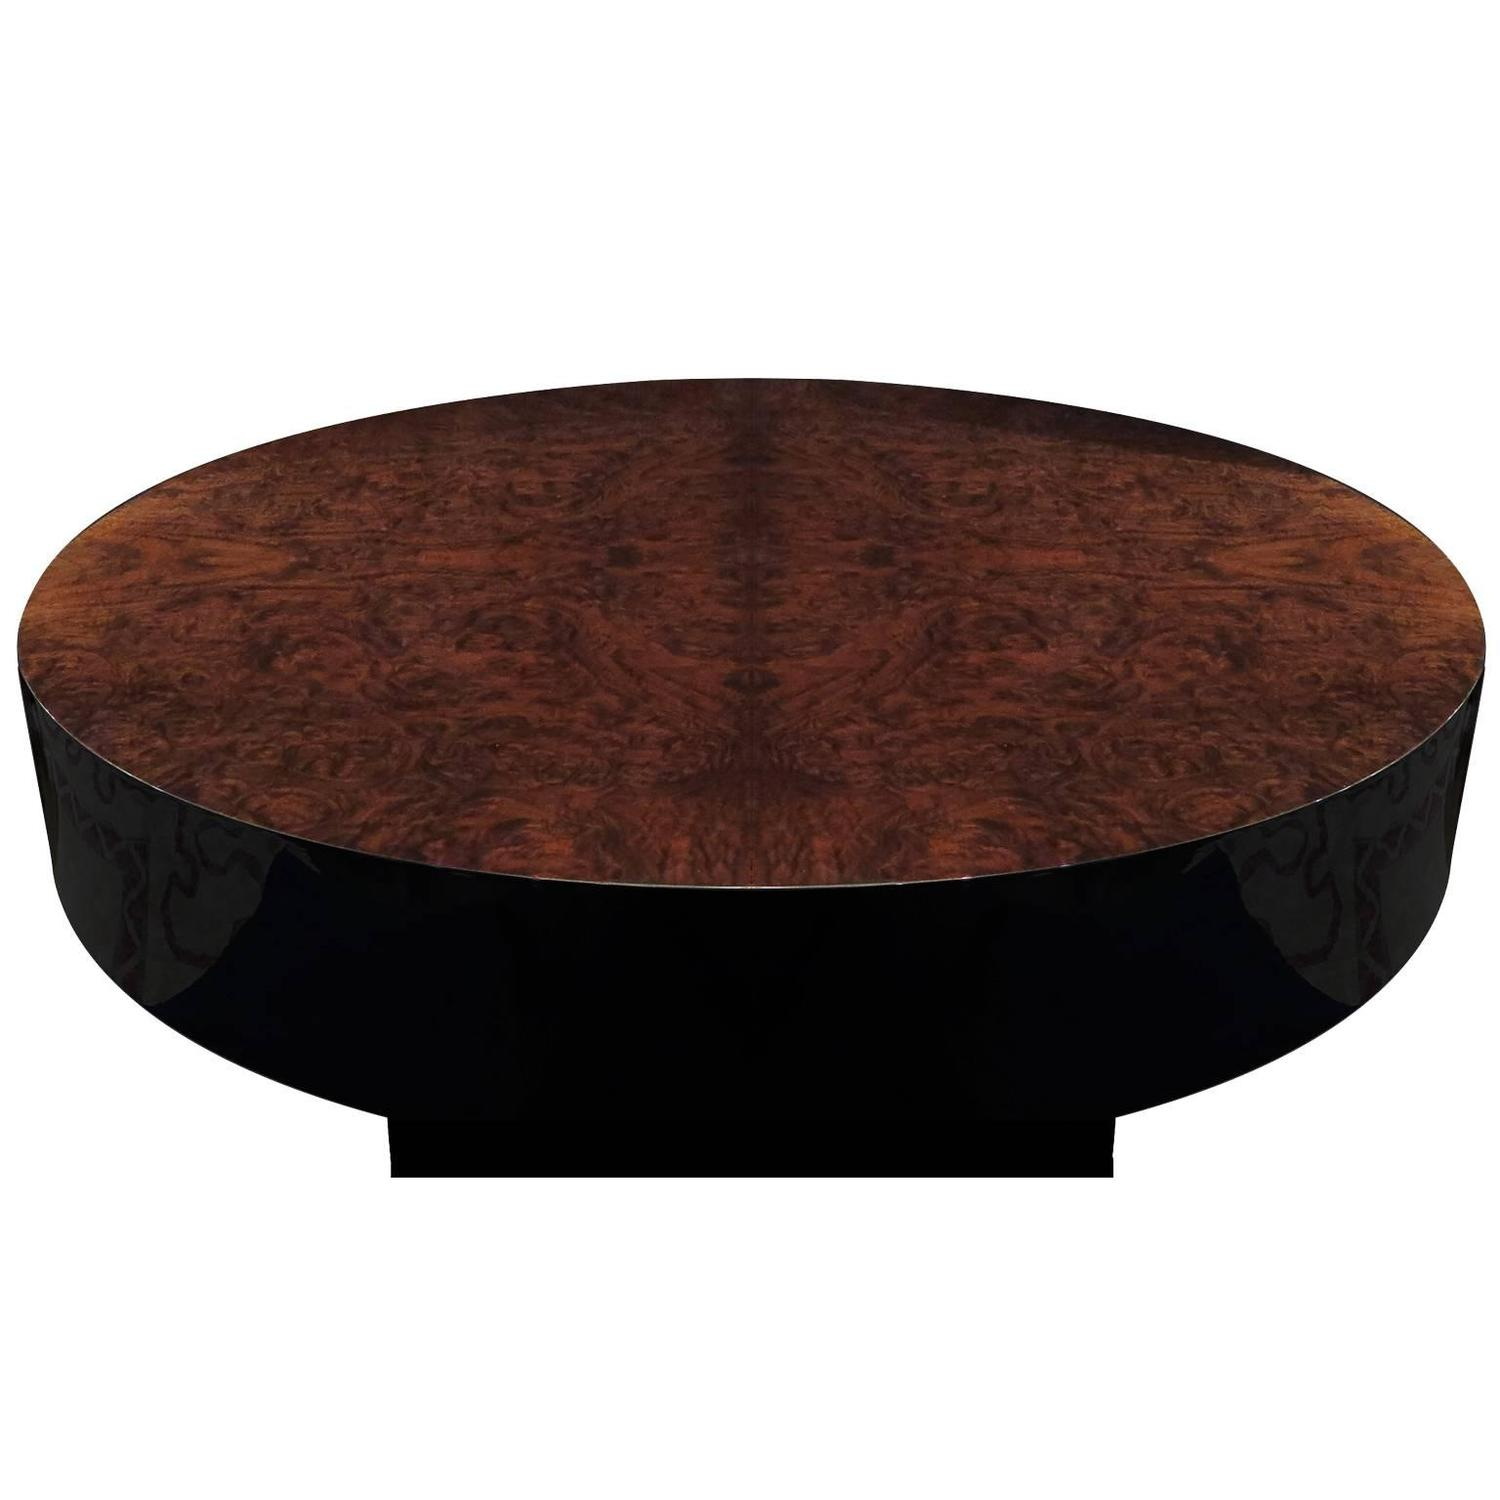 Mid Century Walnut Burl Pull Out Coffee Table For Sale at